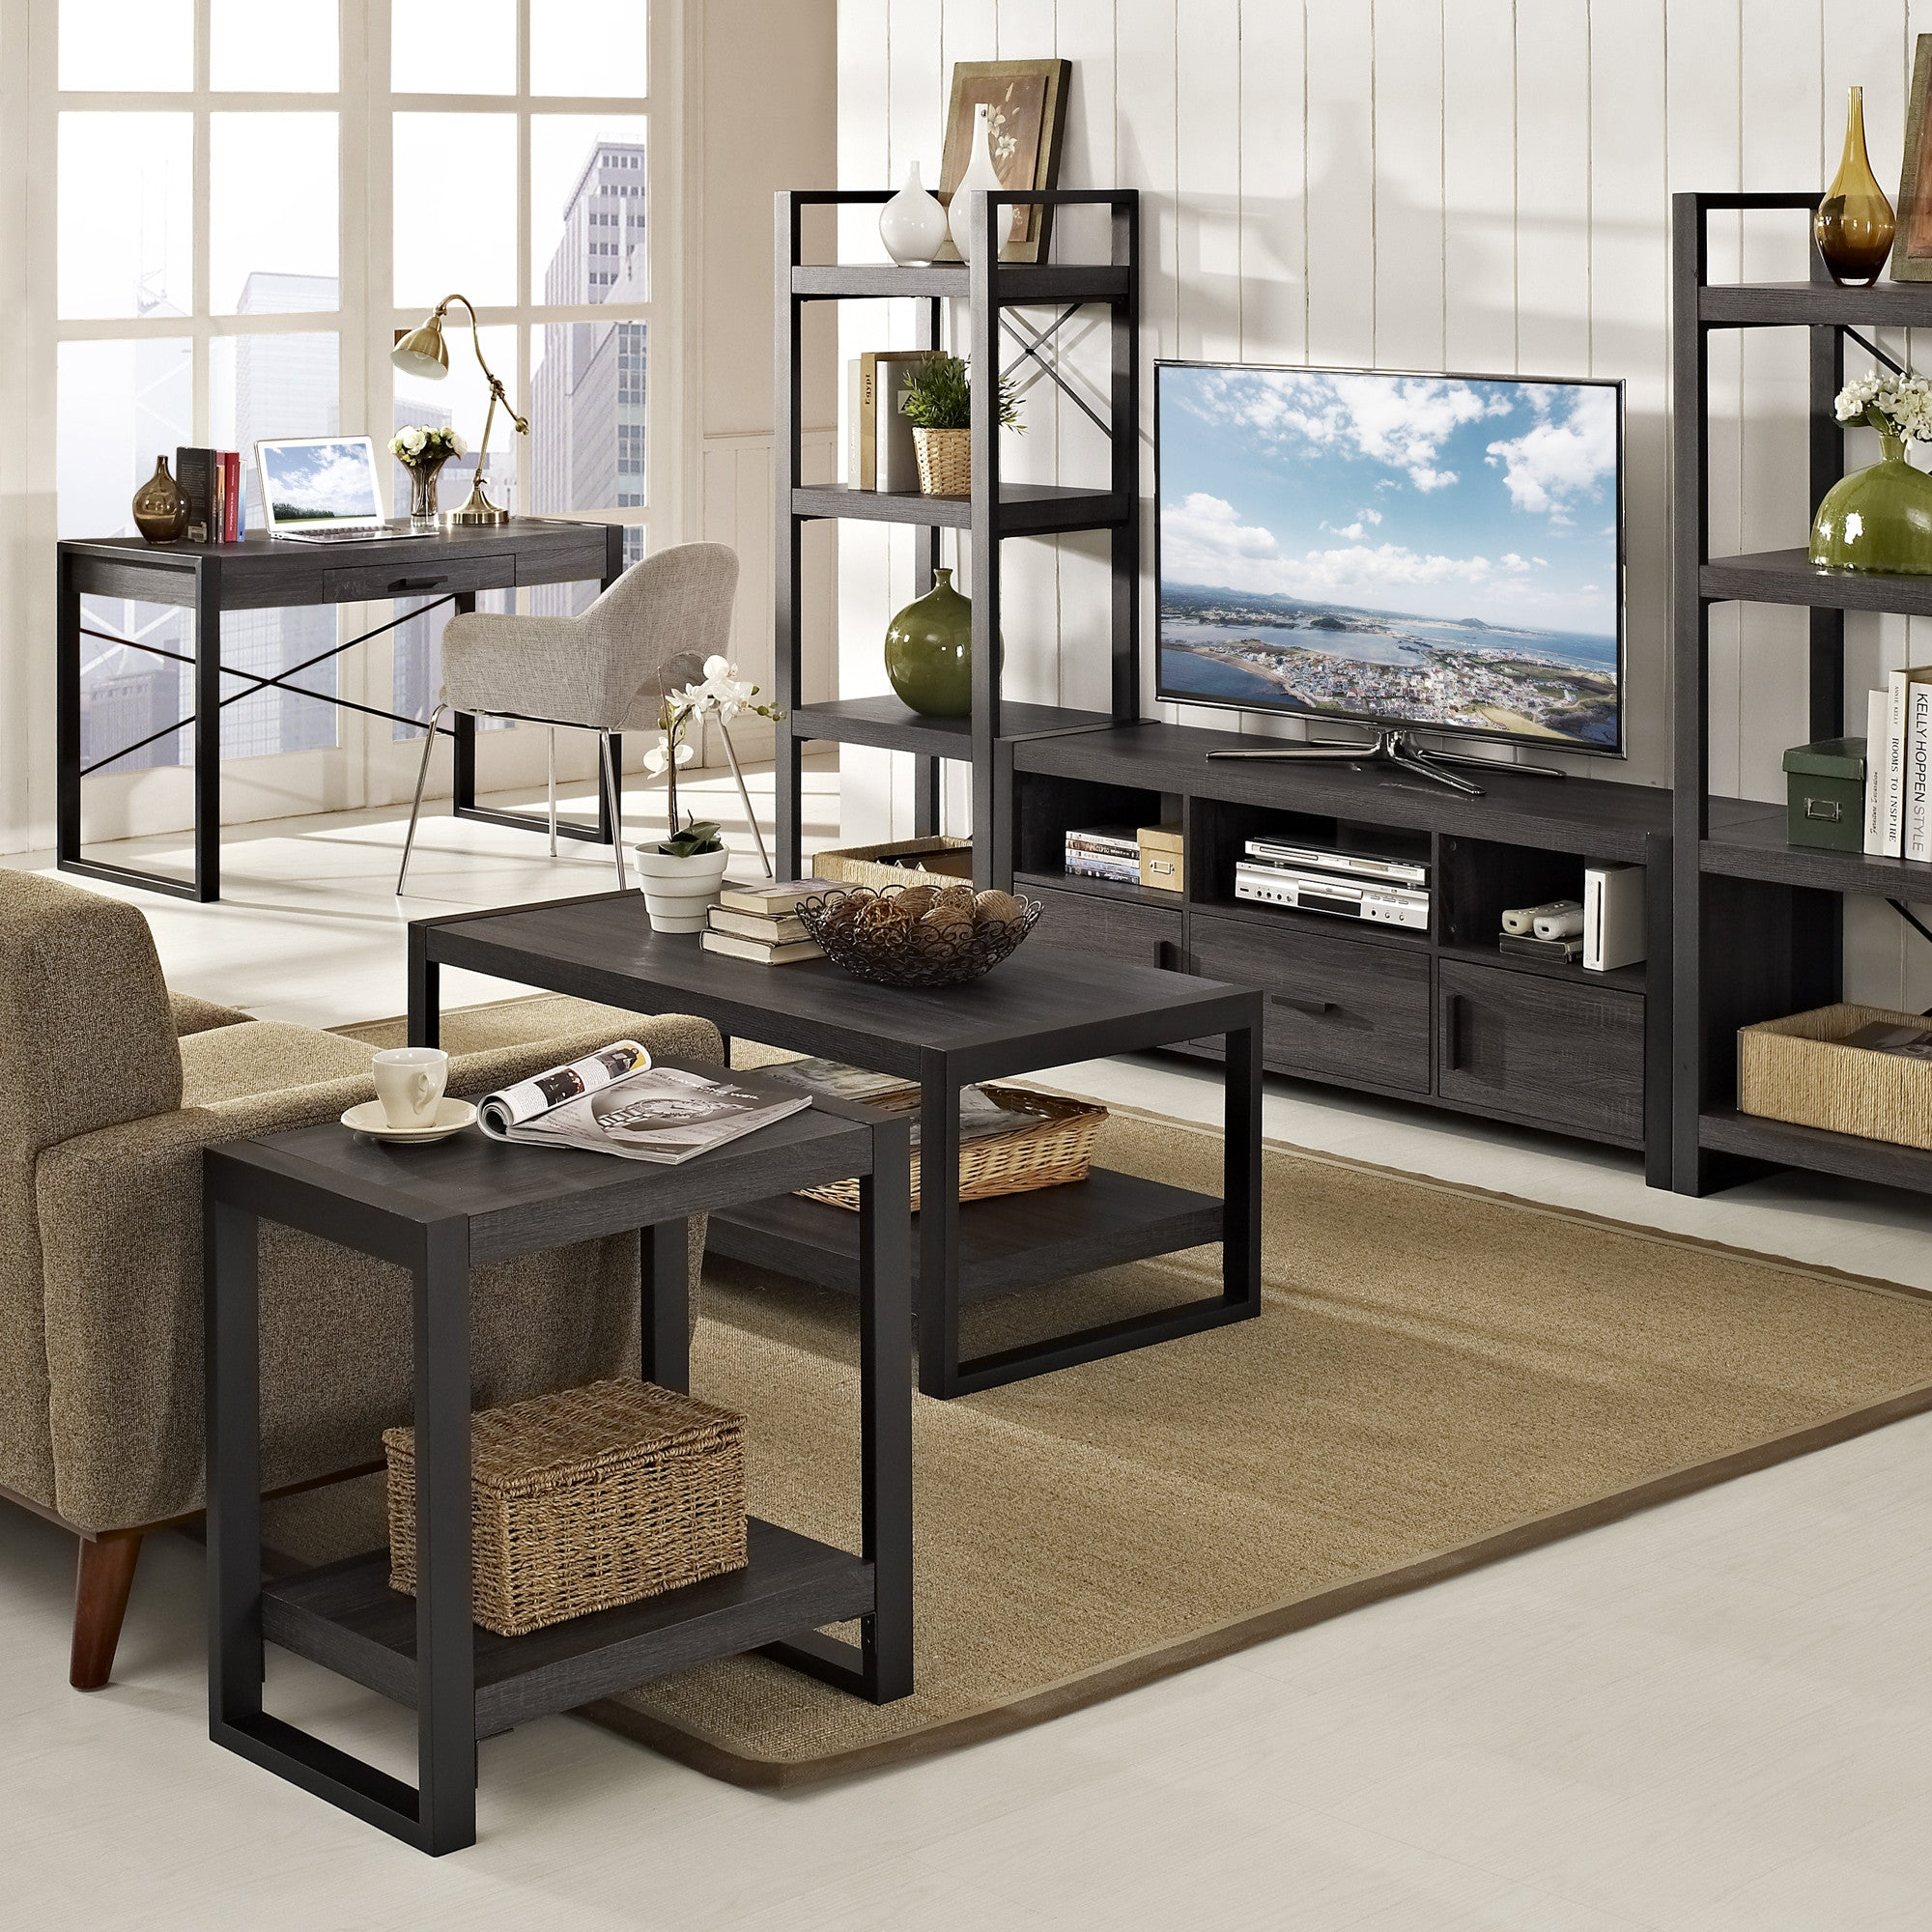 "angelo HOME City Grove 48"" Coffee Table in Charcoal"